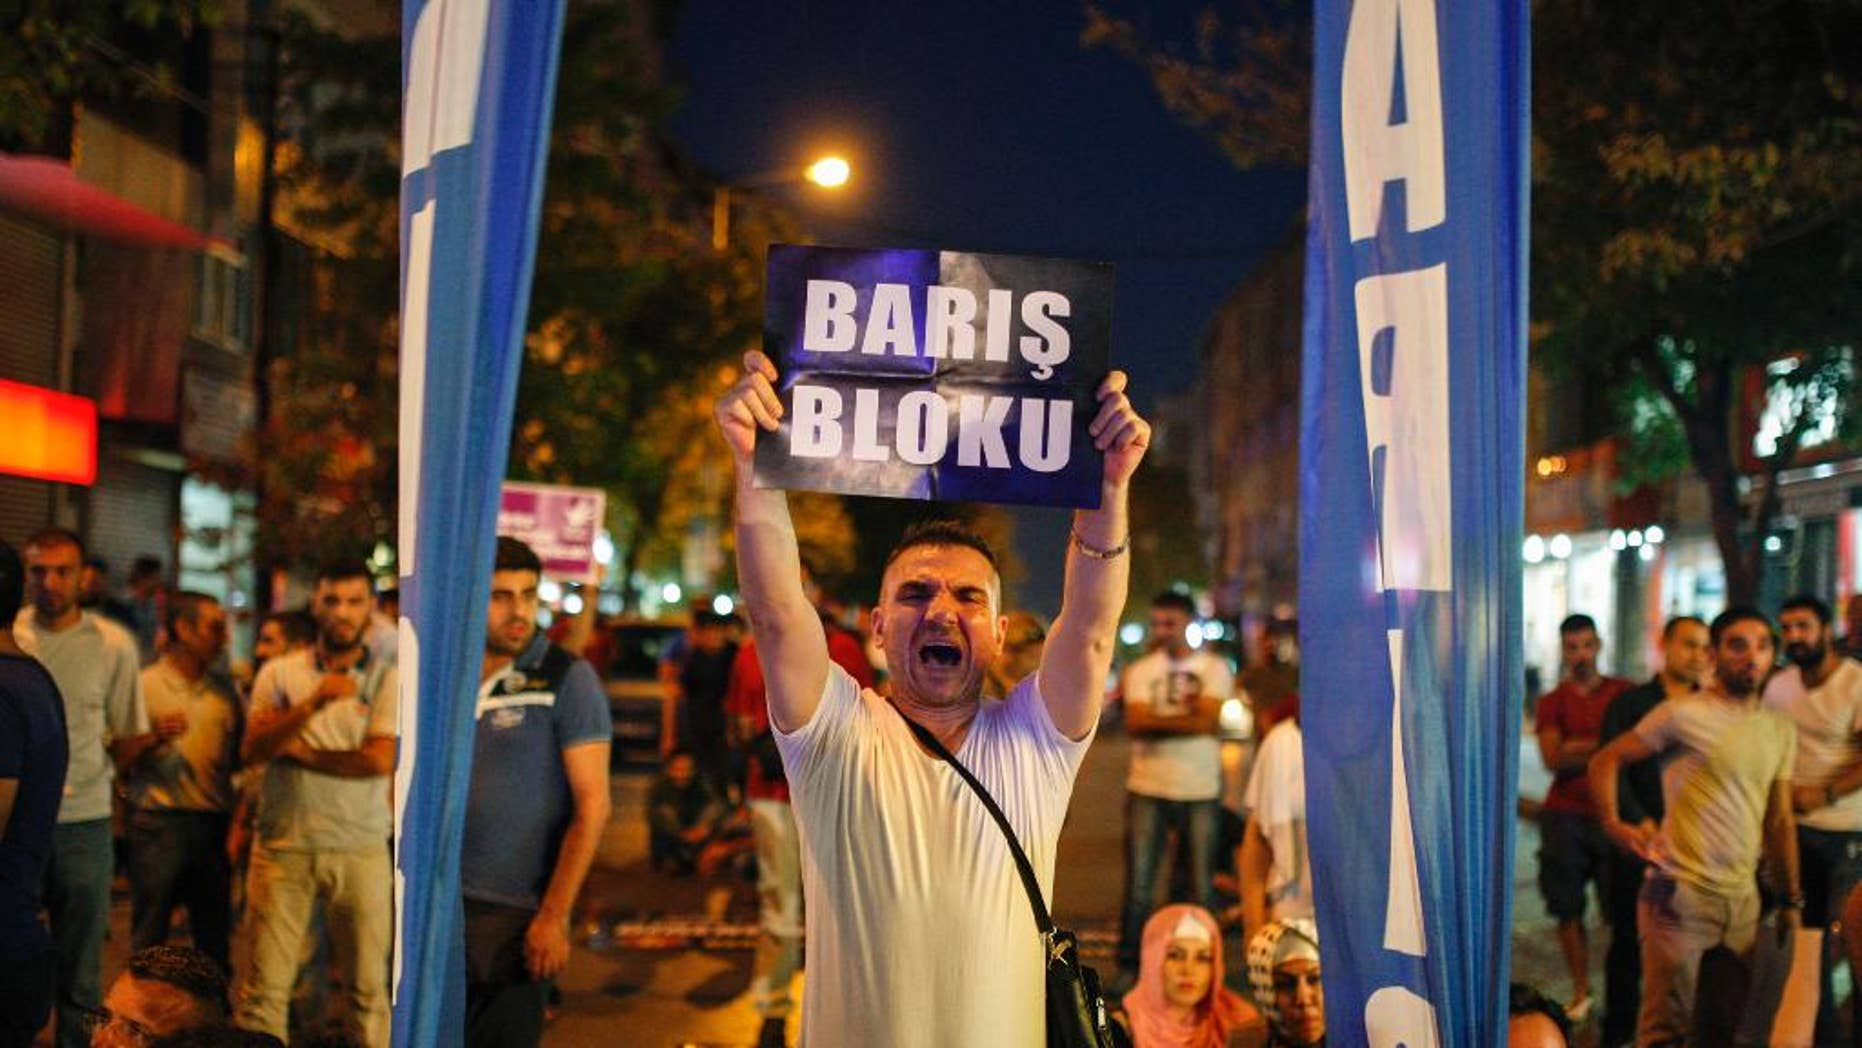 """A man protesting against Turkey's operations against Kurdish militants holds a sign that reads in Turkish: """"Peace Block"""" , in Istanbul, Wednesday, Aug. 19, 2015. There has been a sharp escalation of violence between Turkey's security forces and the Kurdistan Workers' Party, or PKK, along with the collapse of a two-year peace process with the rebels. Dozens of people, mostly Turkish soldiers, have died since July in the renewed violence. (AP Photo/Cagdas Erdogan) TURKEY OUT"""